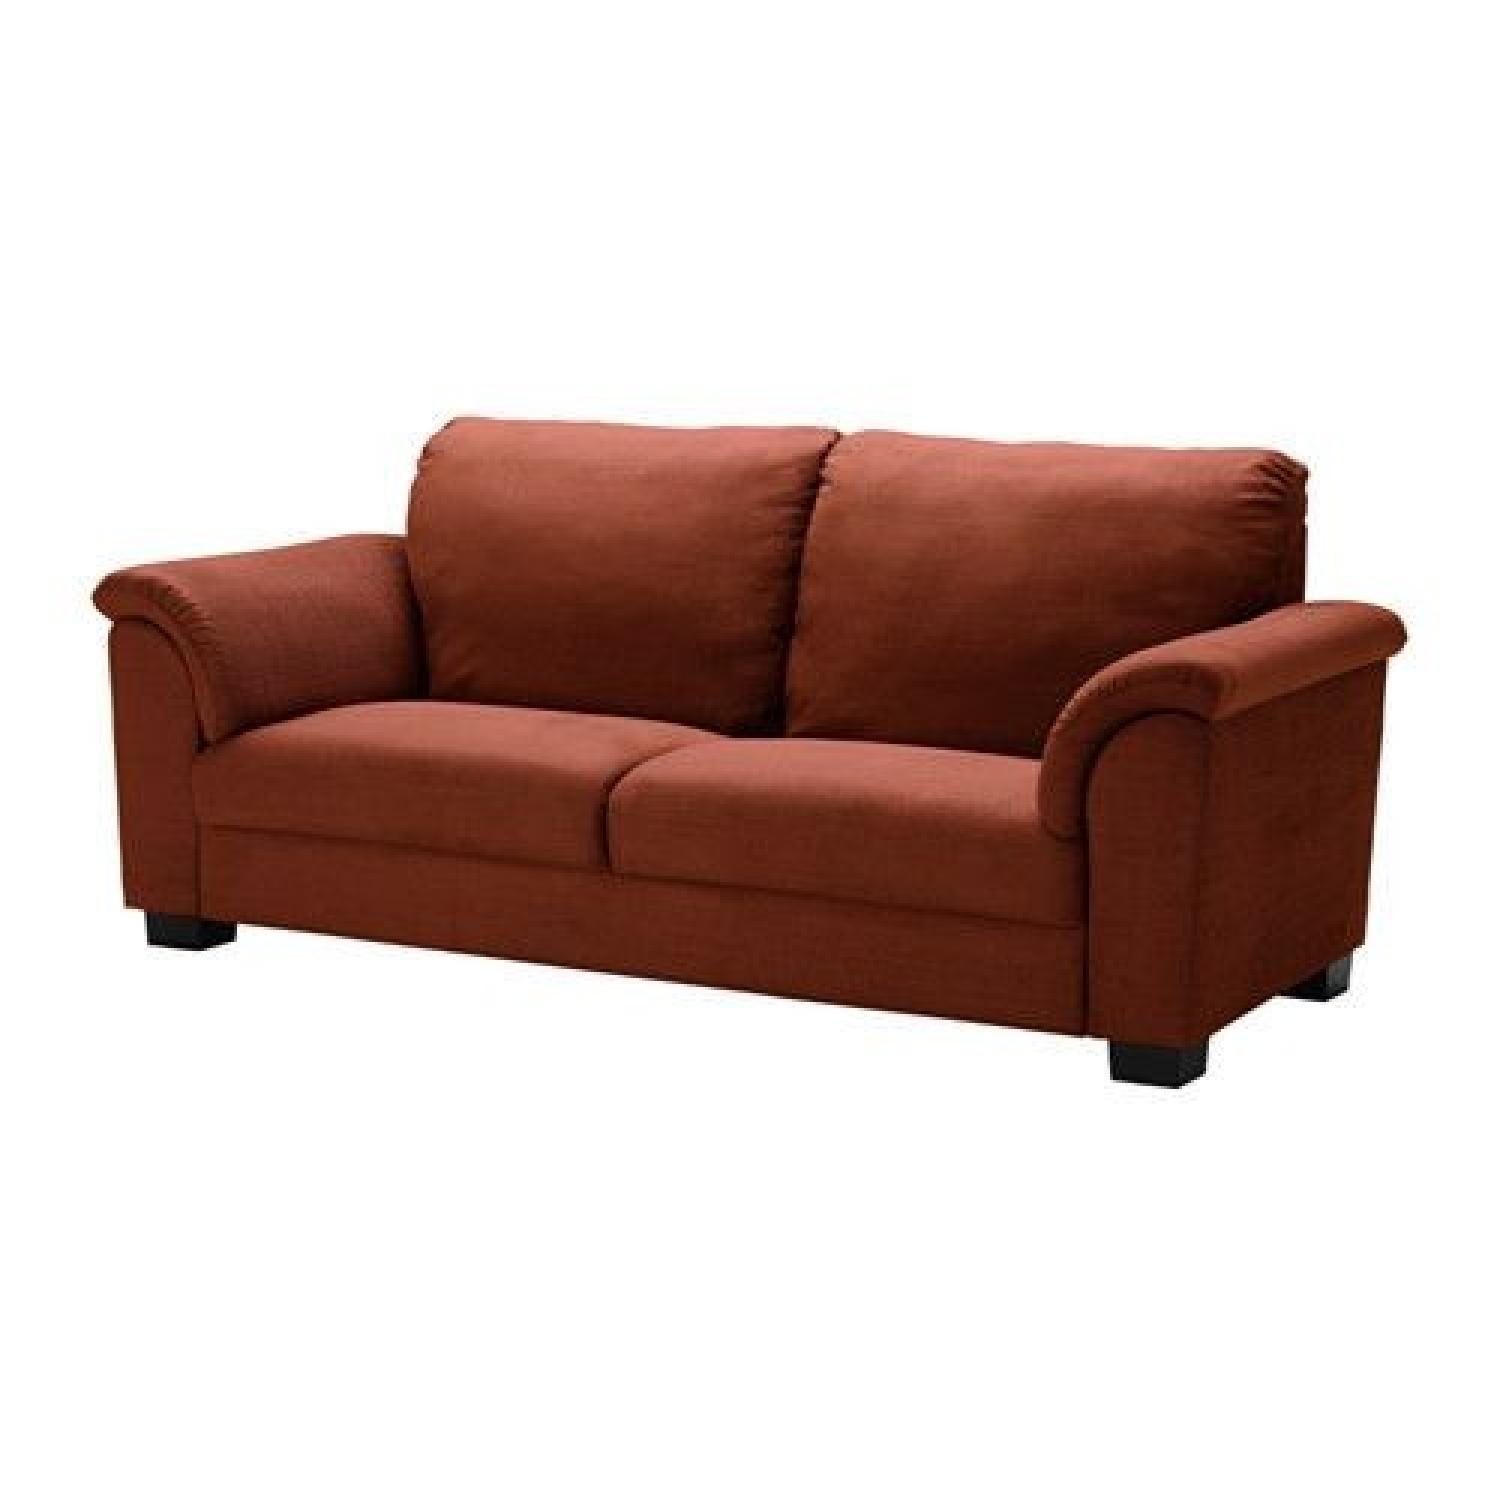 Ikea Tidafors Sofa In Tullinge Rust ...